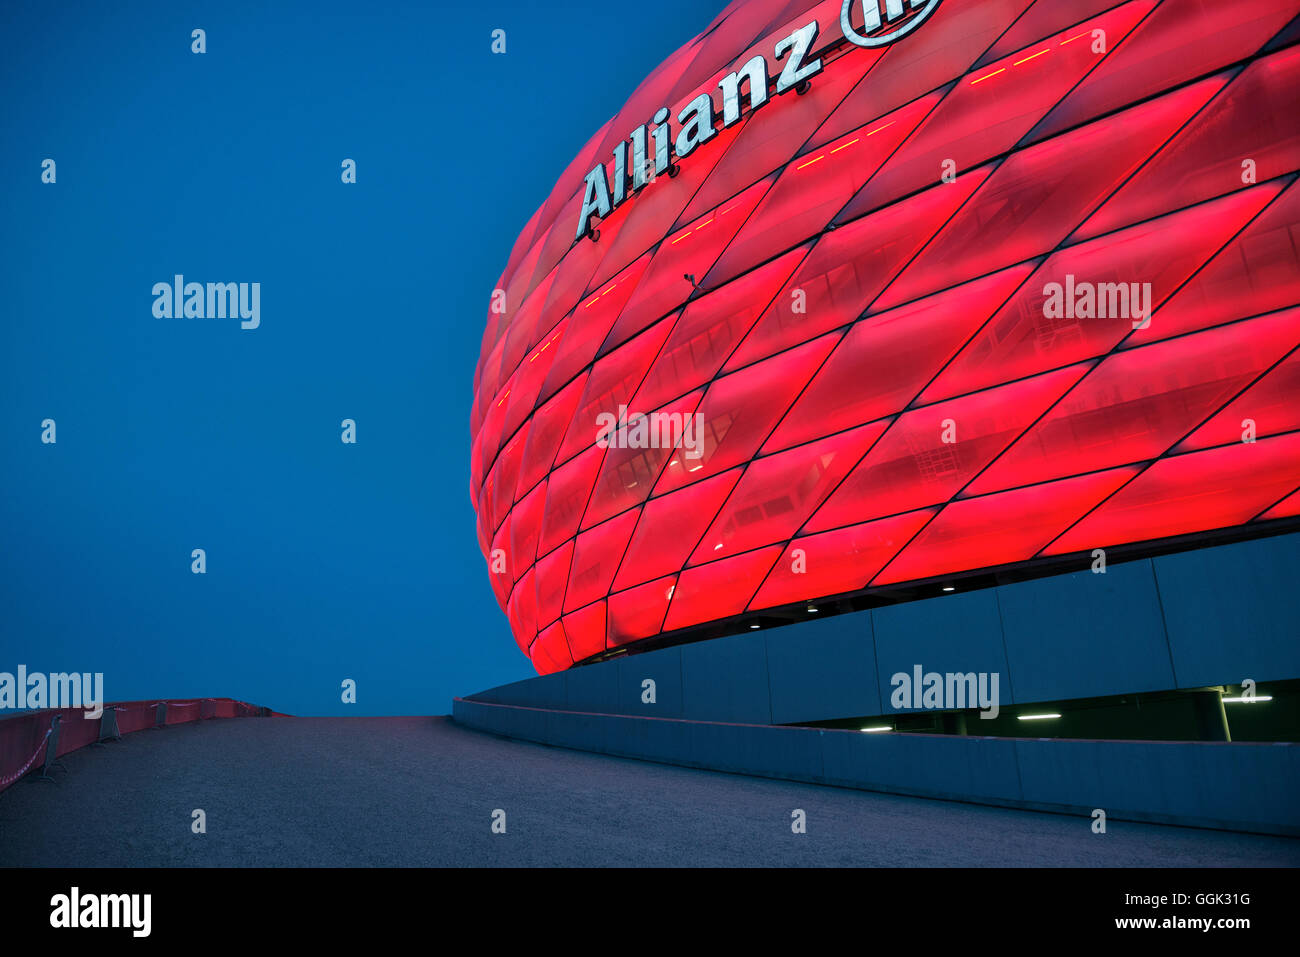 Allianz Arena at night, red light, football stadium of FC Bayern München, Munich, Bavaria, Germany, Architects - Stock Image